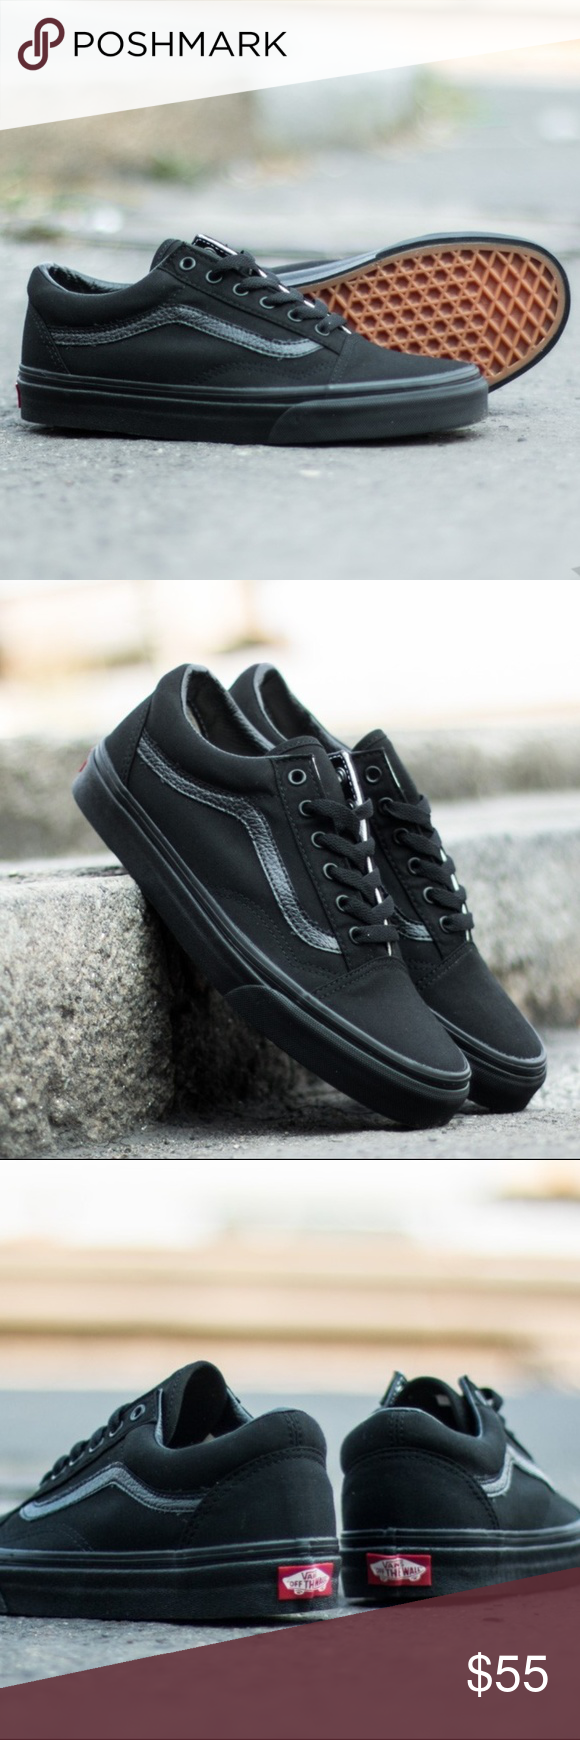 c637e087c0 Vans Old Skool black women size 6.5 - new in box New in boxes. Black canvas  top